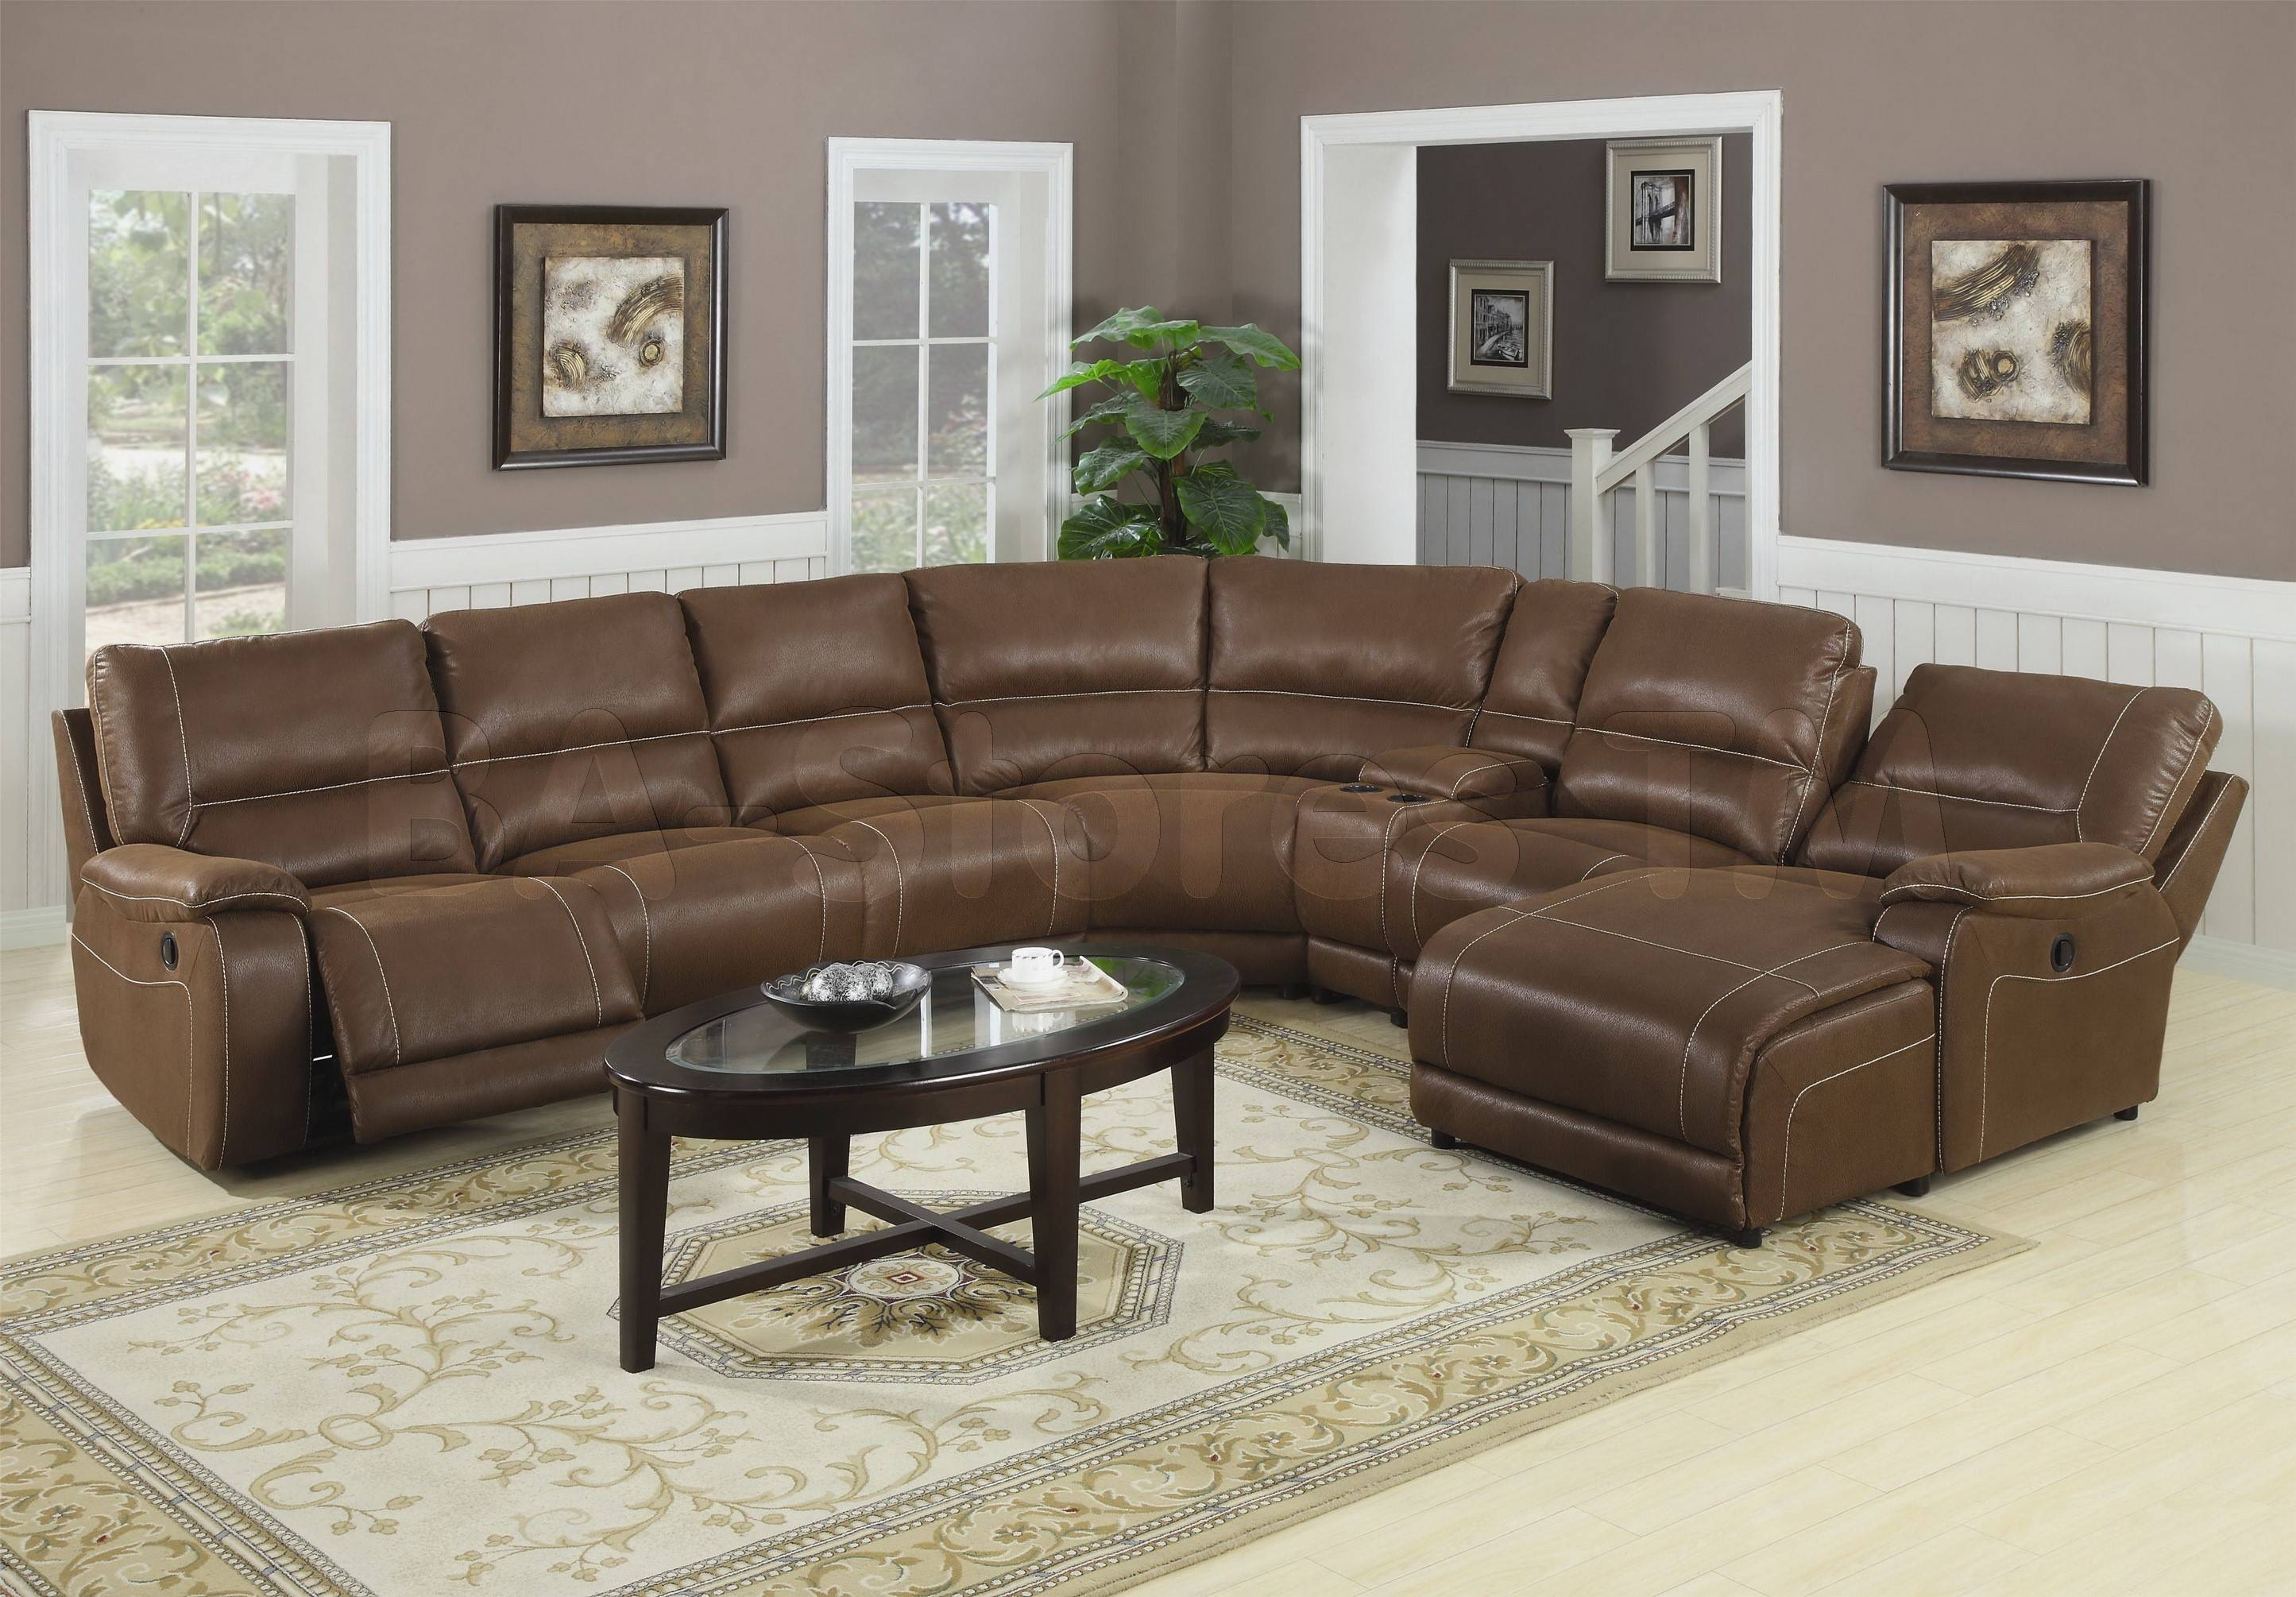 Furniture: Sectional Couches With Recliners | U Shaped Sectional for U Shaped Leather Sectional Sofa (Image 10 of 25)